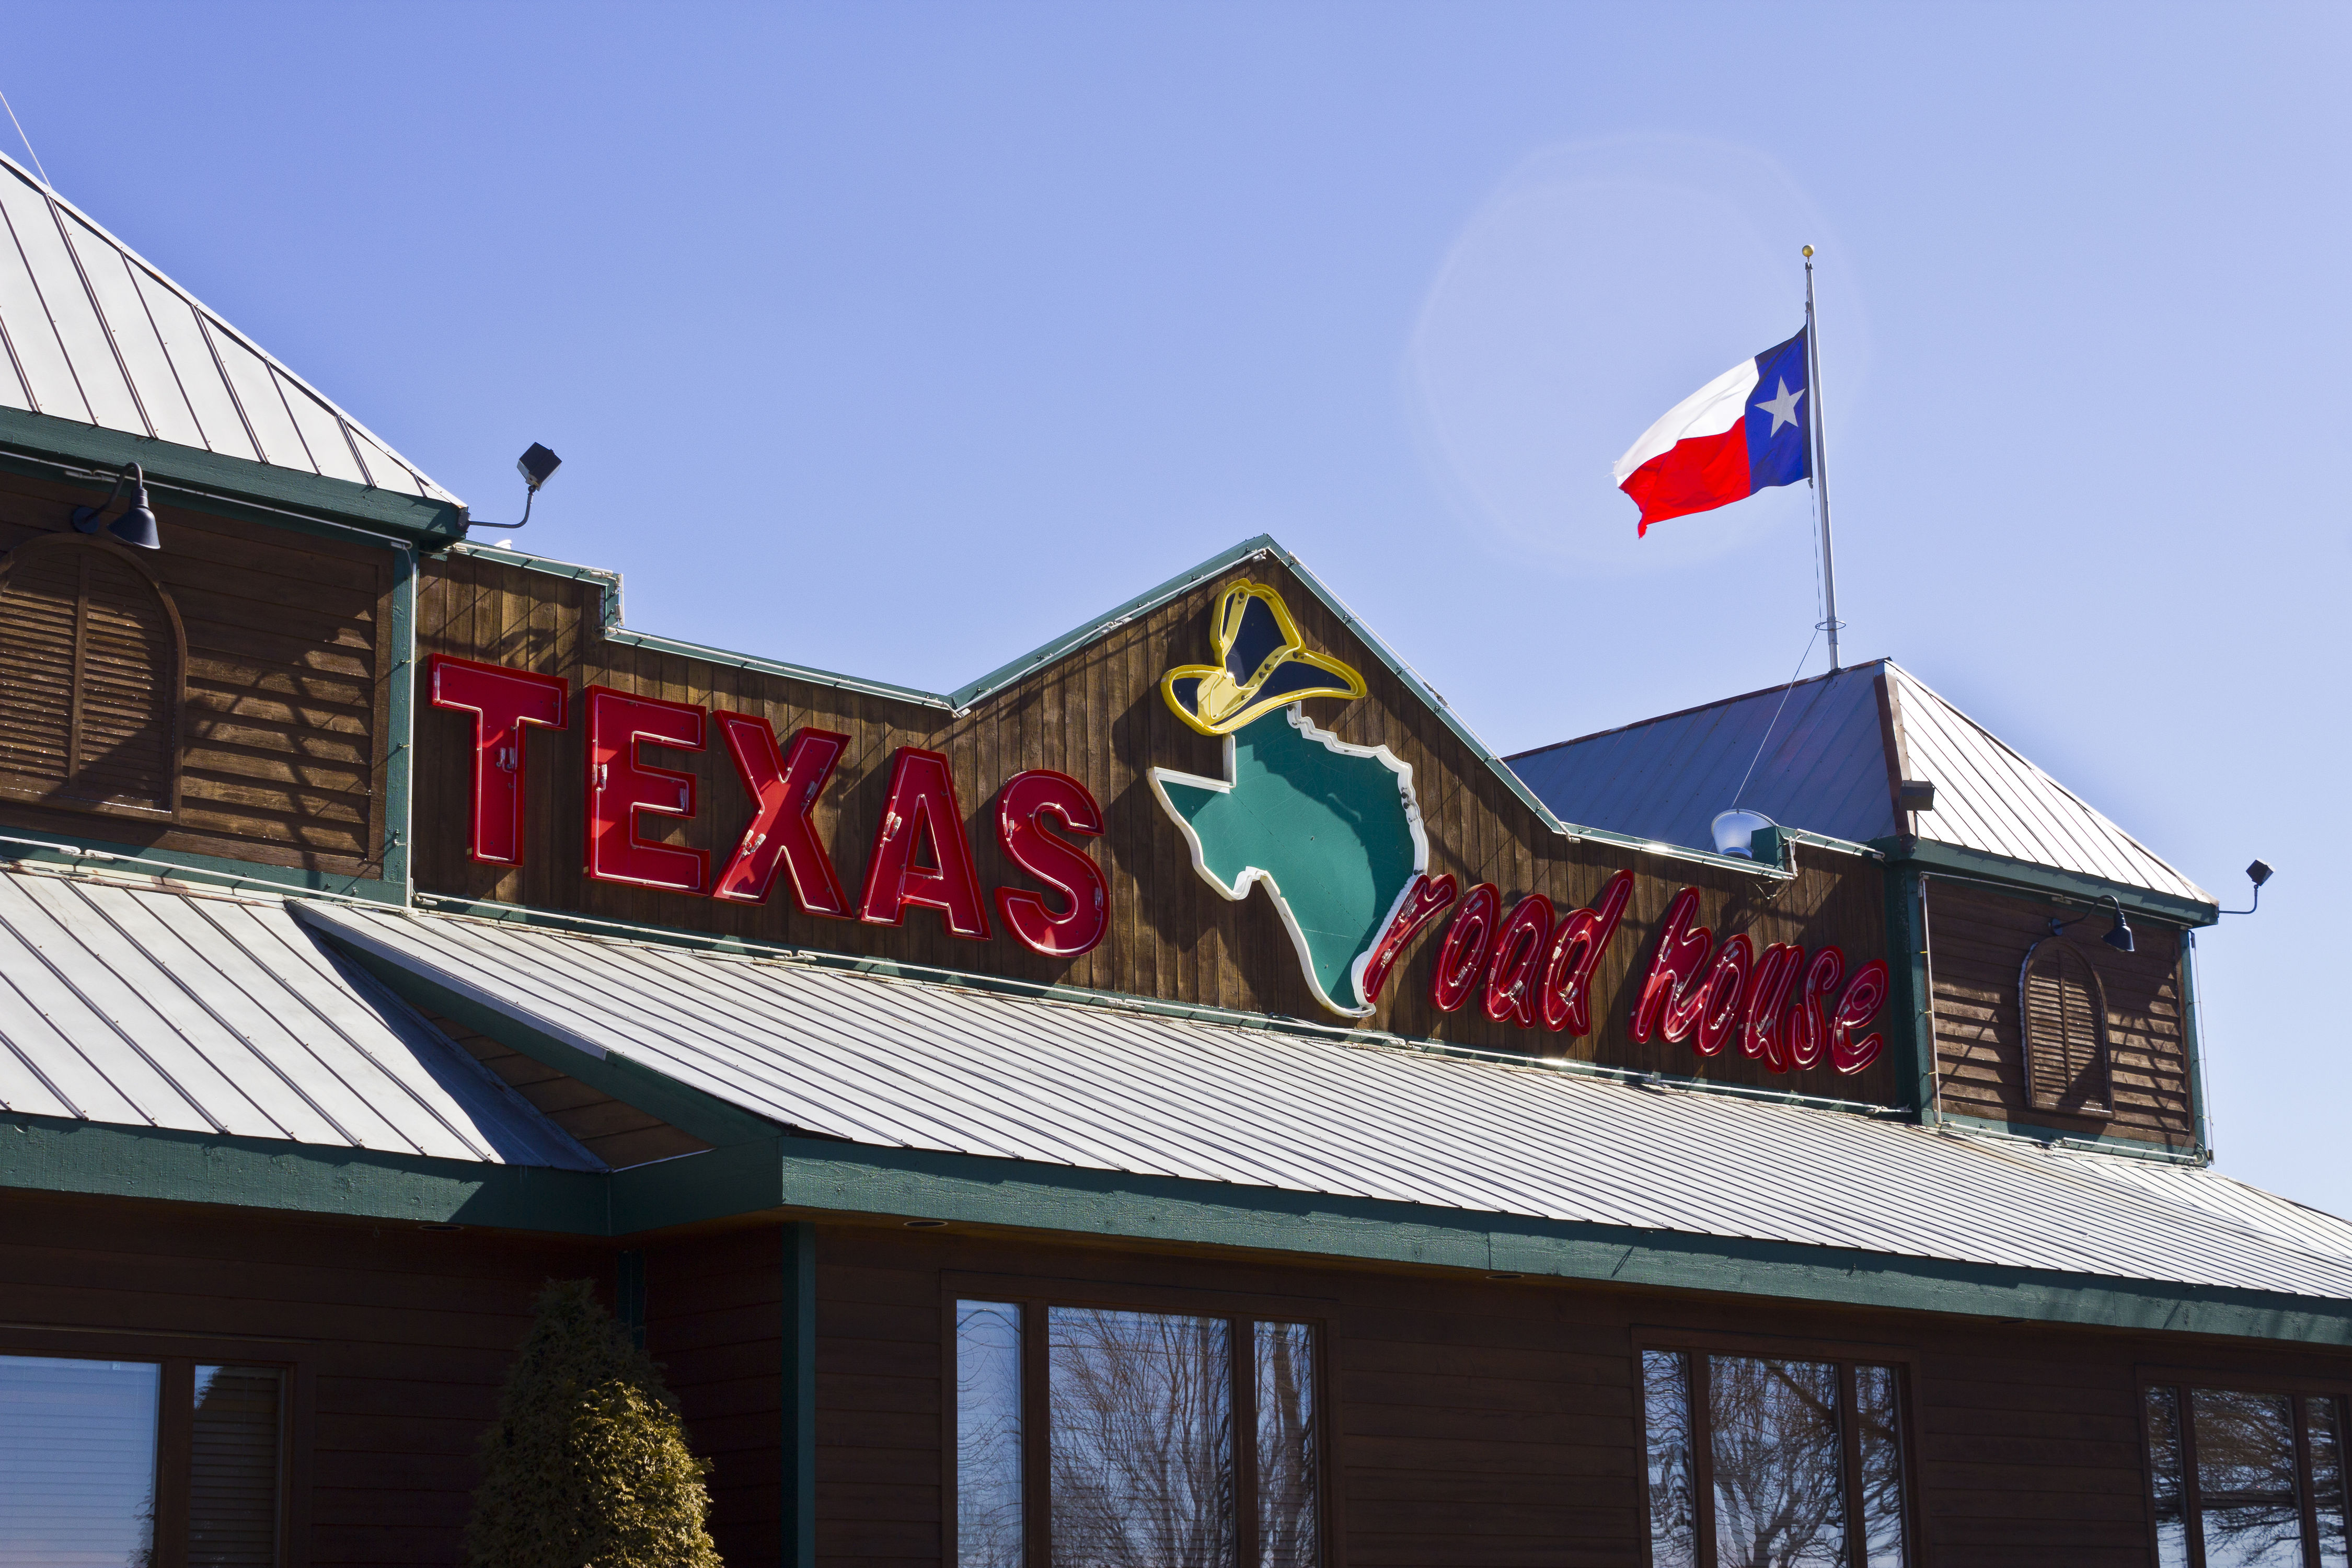 This Couple Has Eaten at the Same Texas Roadhouse Six Days a Week for 15 Years